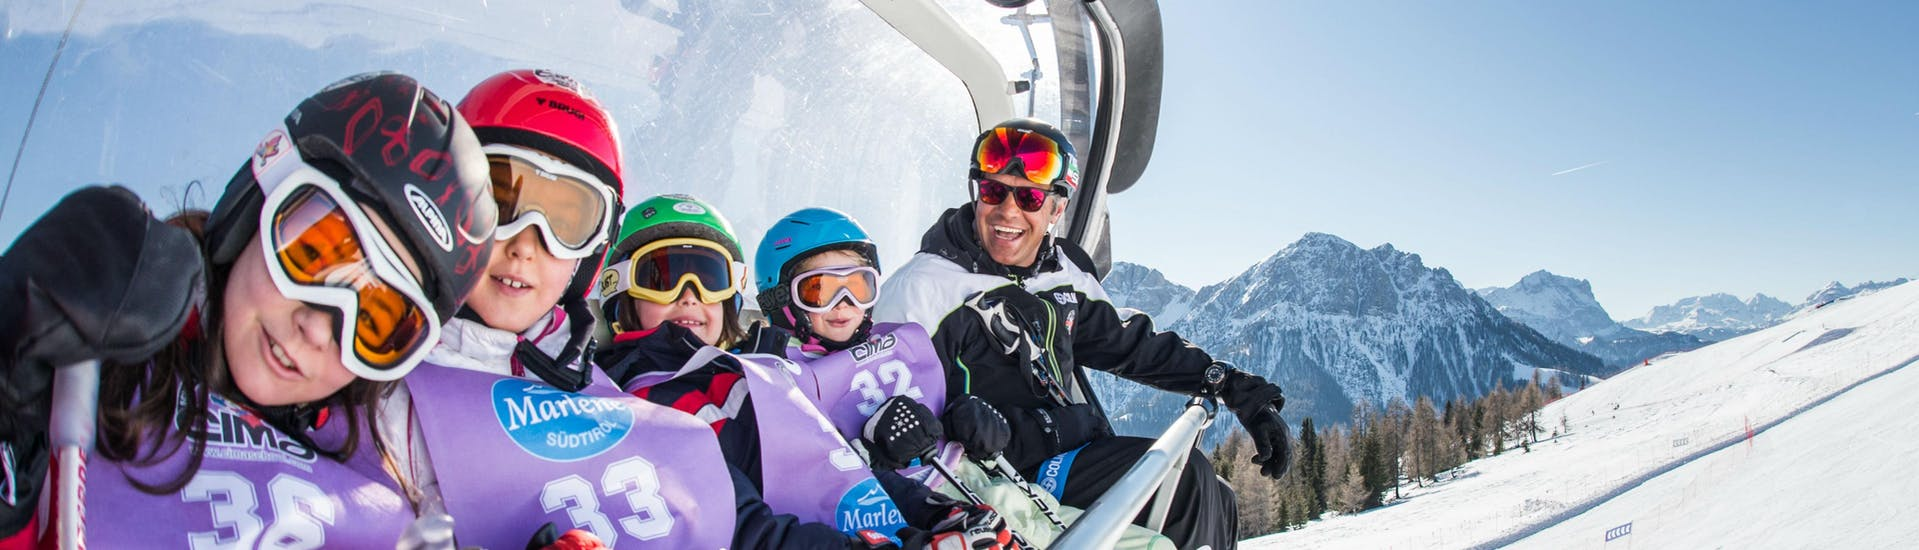 Full-Day Kids Ski Lessons (4-12 y.) for All Levels